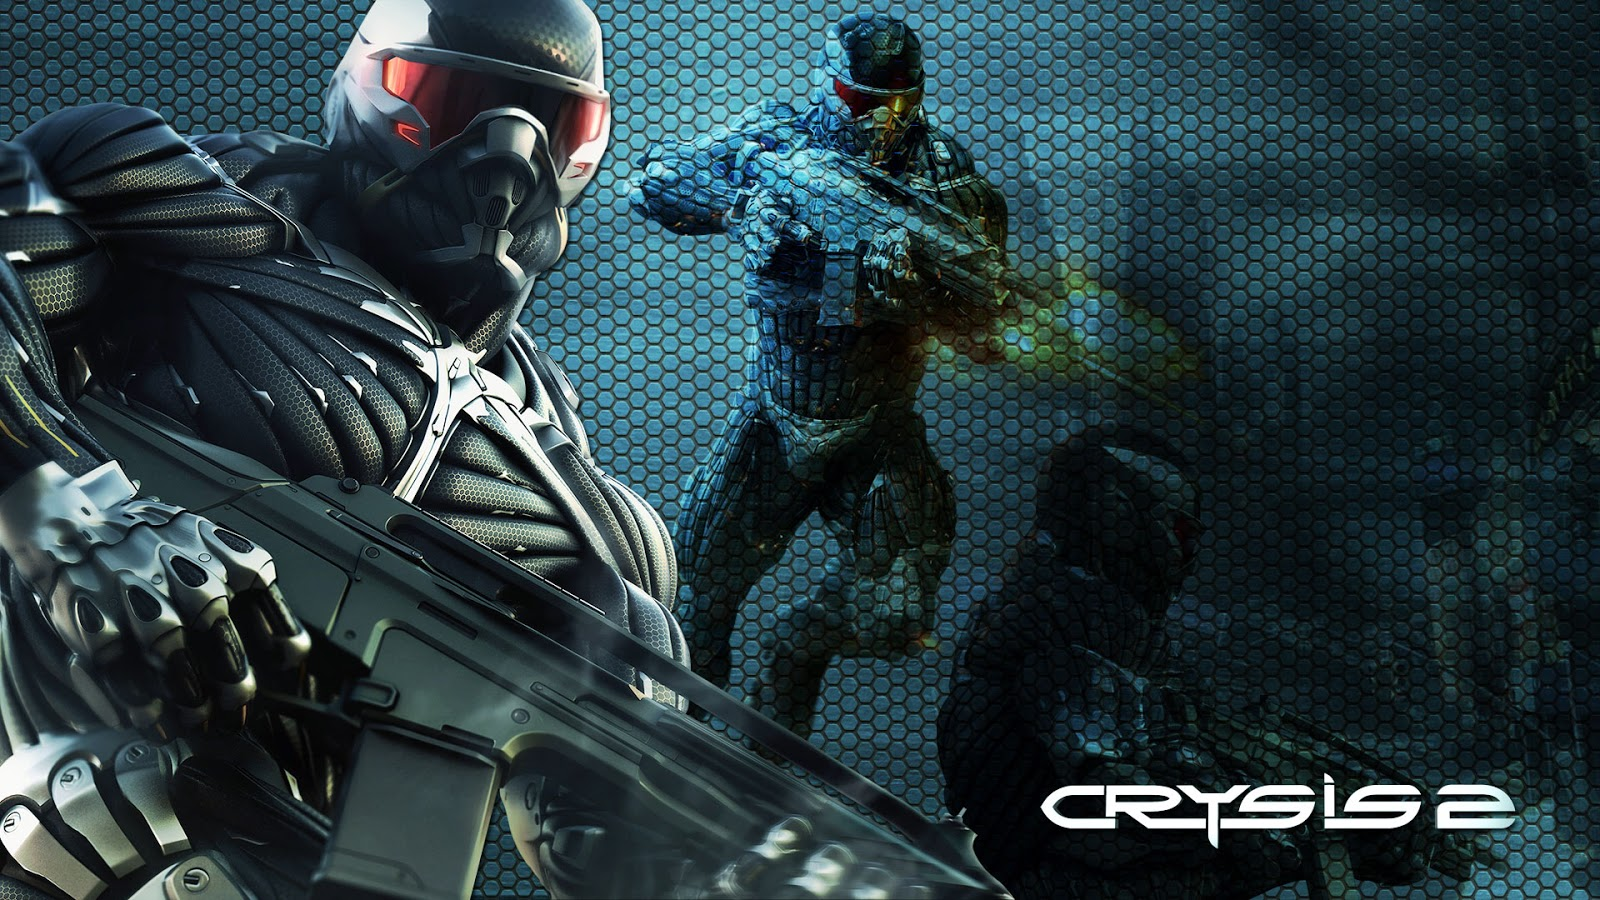 crysis 4 wallpaper hd - photo #24